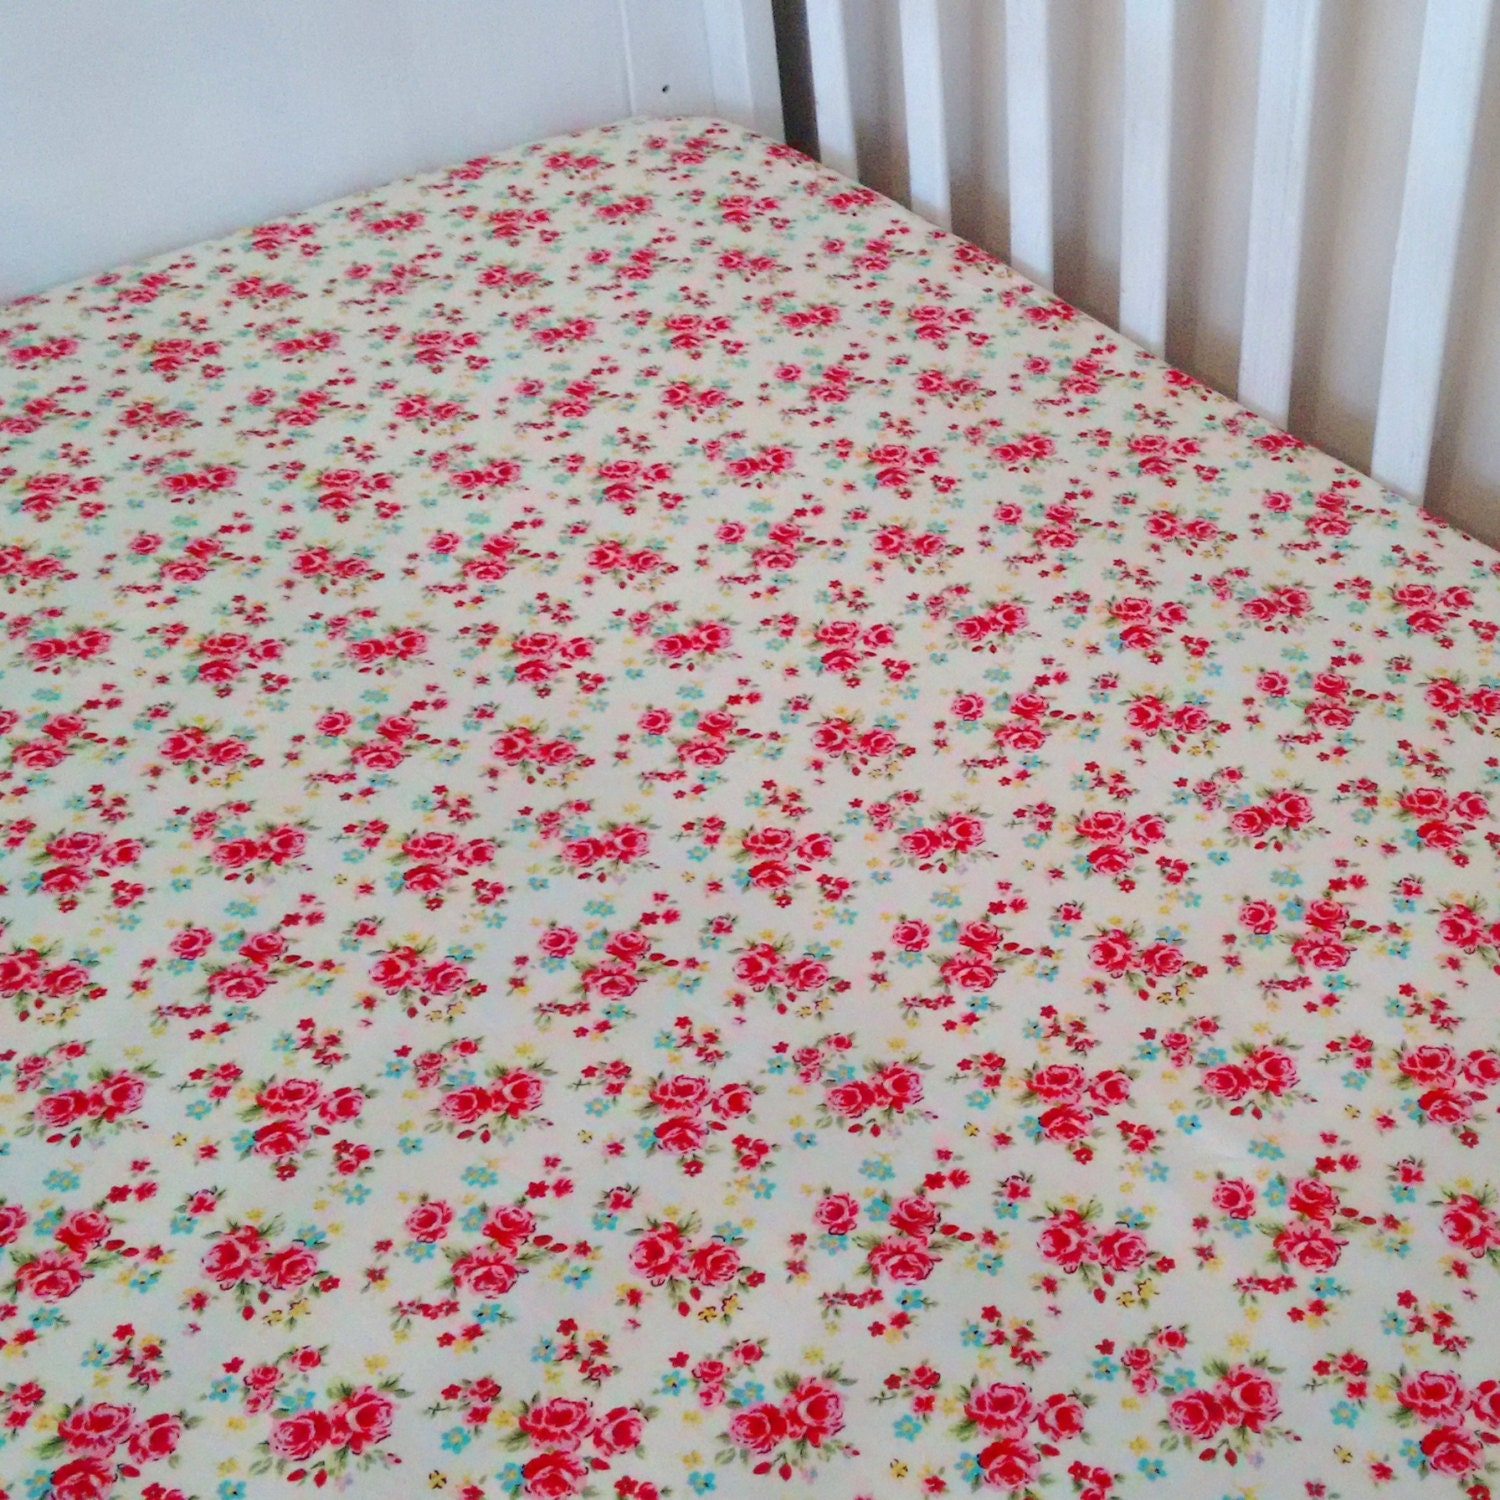 roses cot crib fitted sheet floral fitted sheet. Black Bedroom Furniture Sets. Home Design Ideas